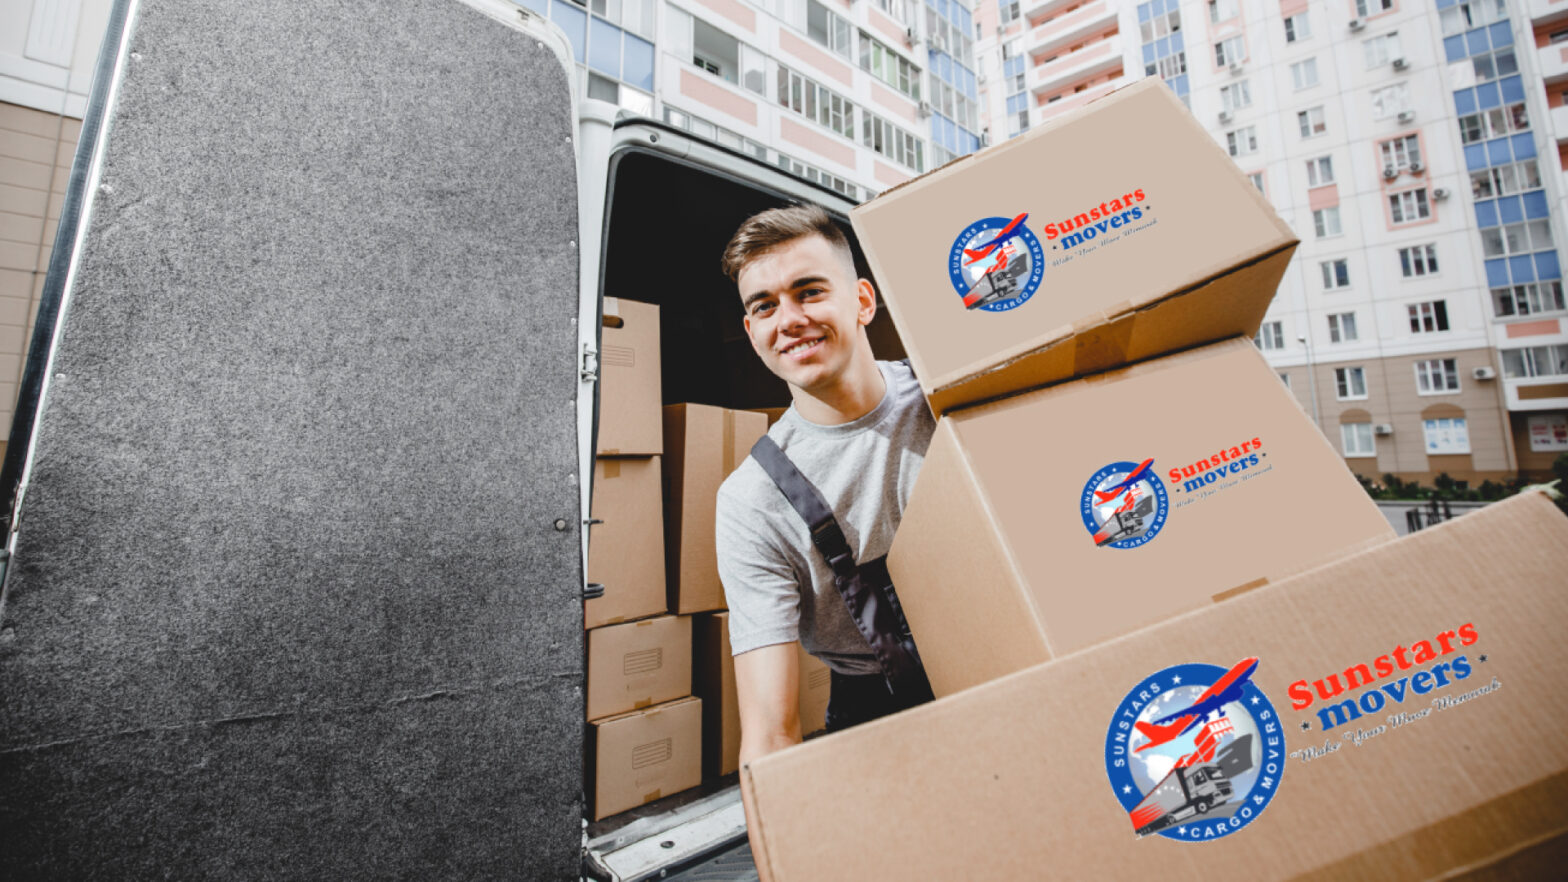 Best Movers And Packers at Sunstars movers